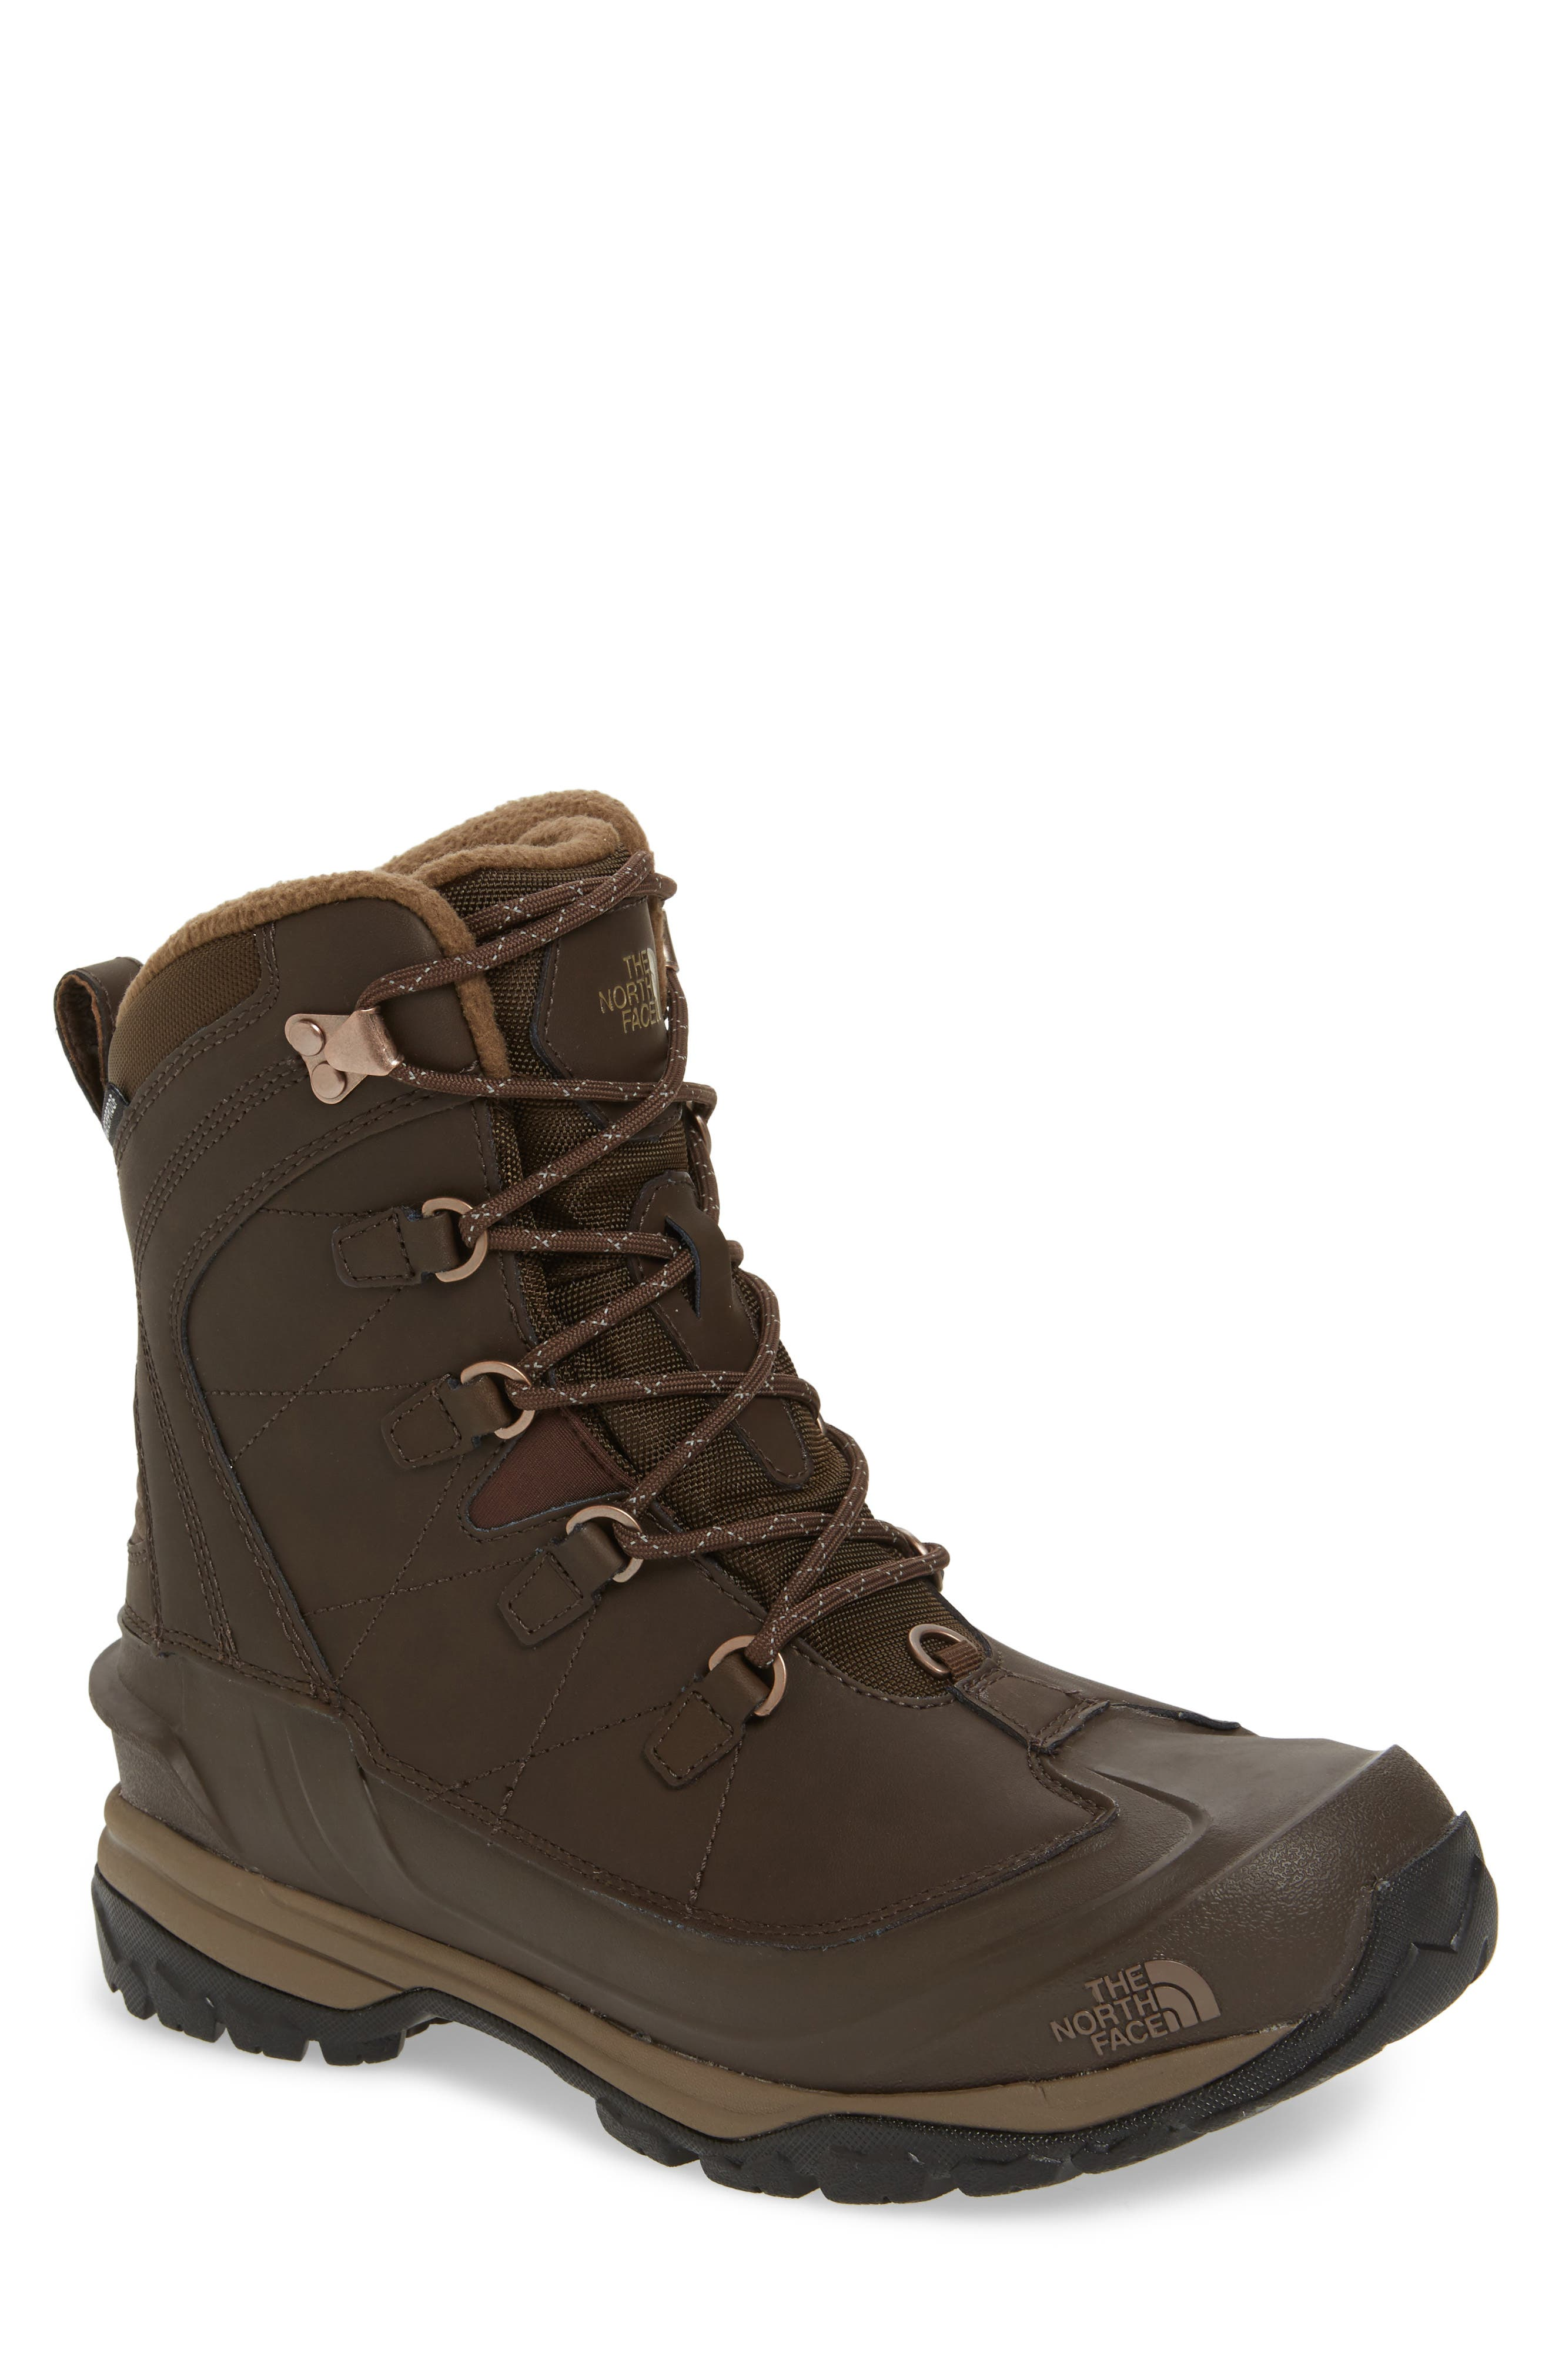 Alternate Image 1 Selected - The North Face Chilkat Evo Waterproof Insulated Snow Boot (Men)